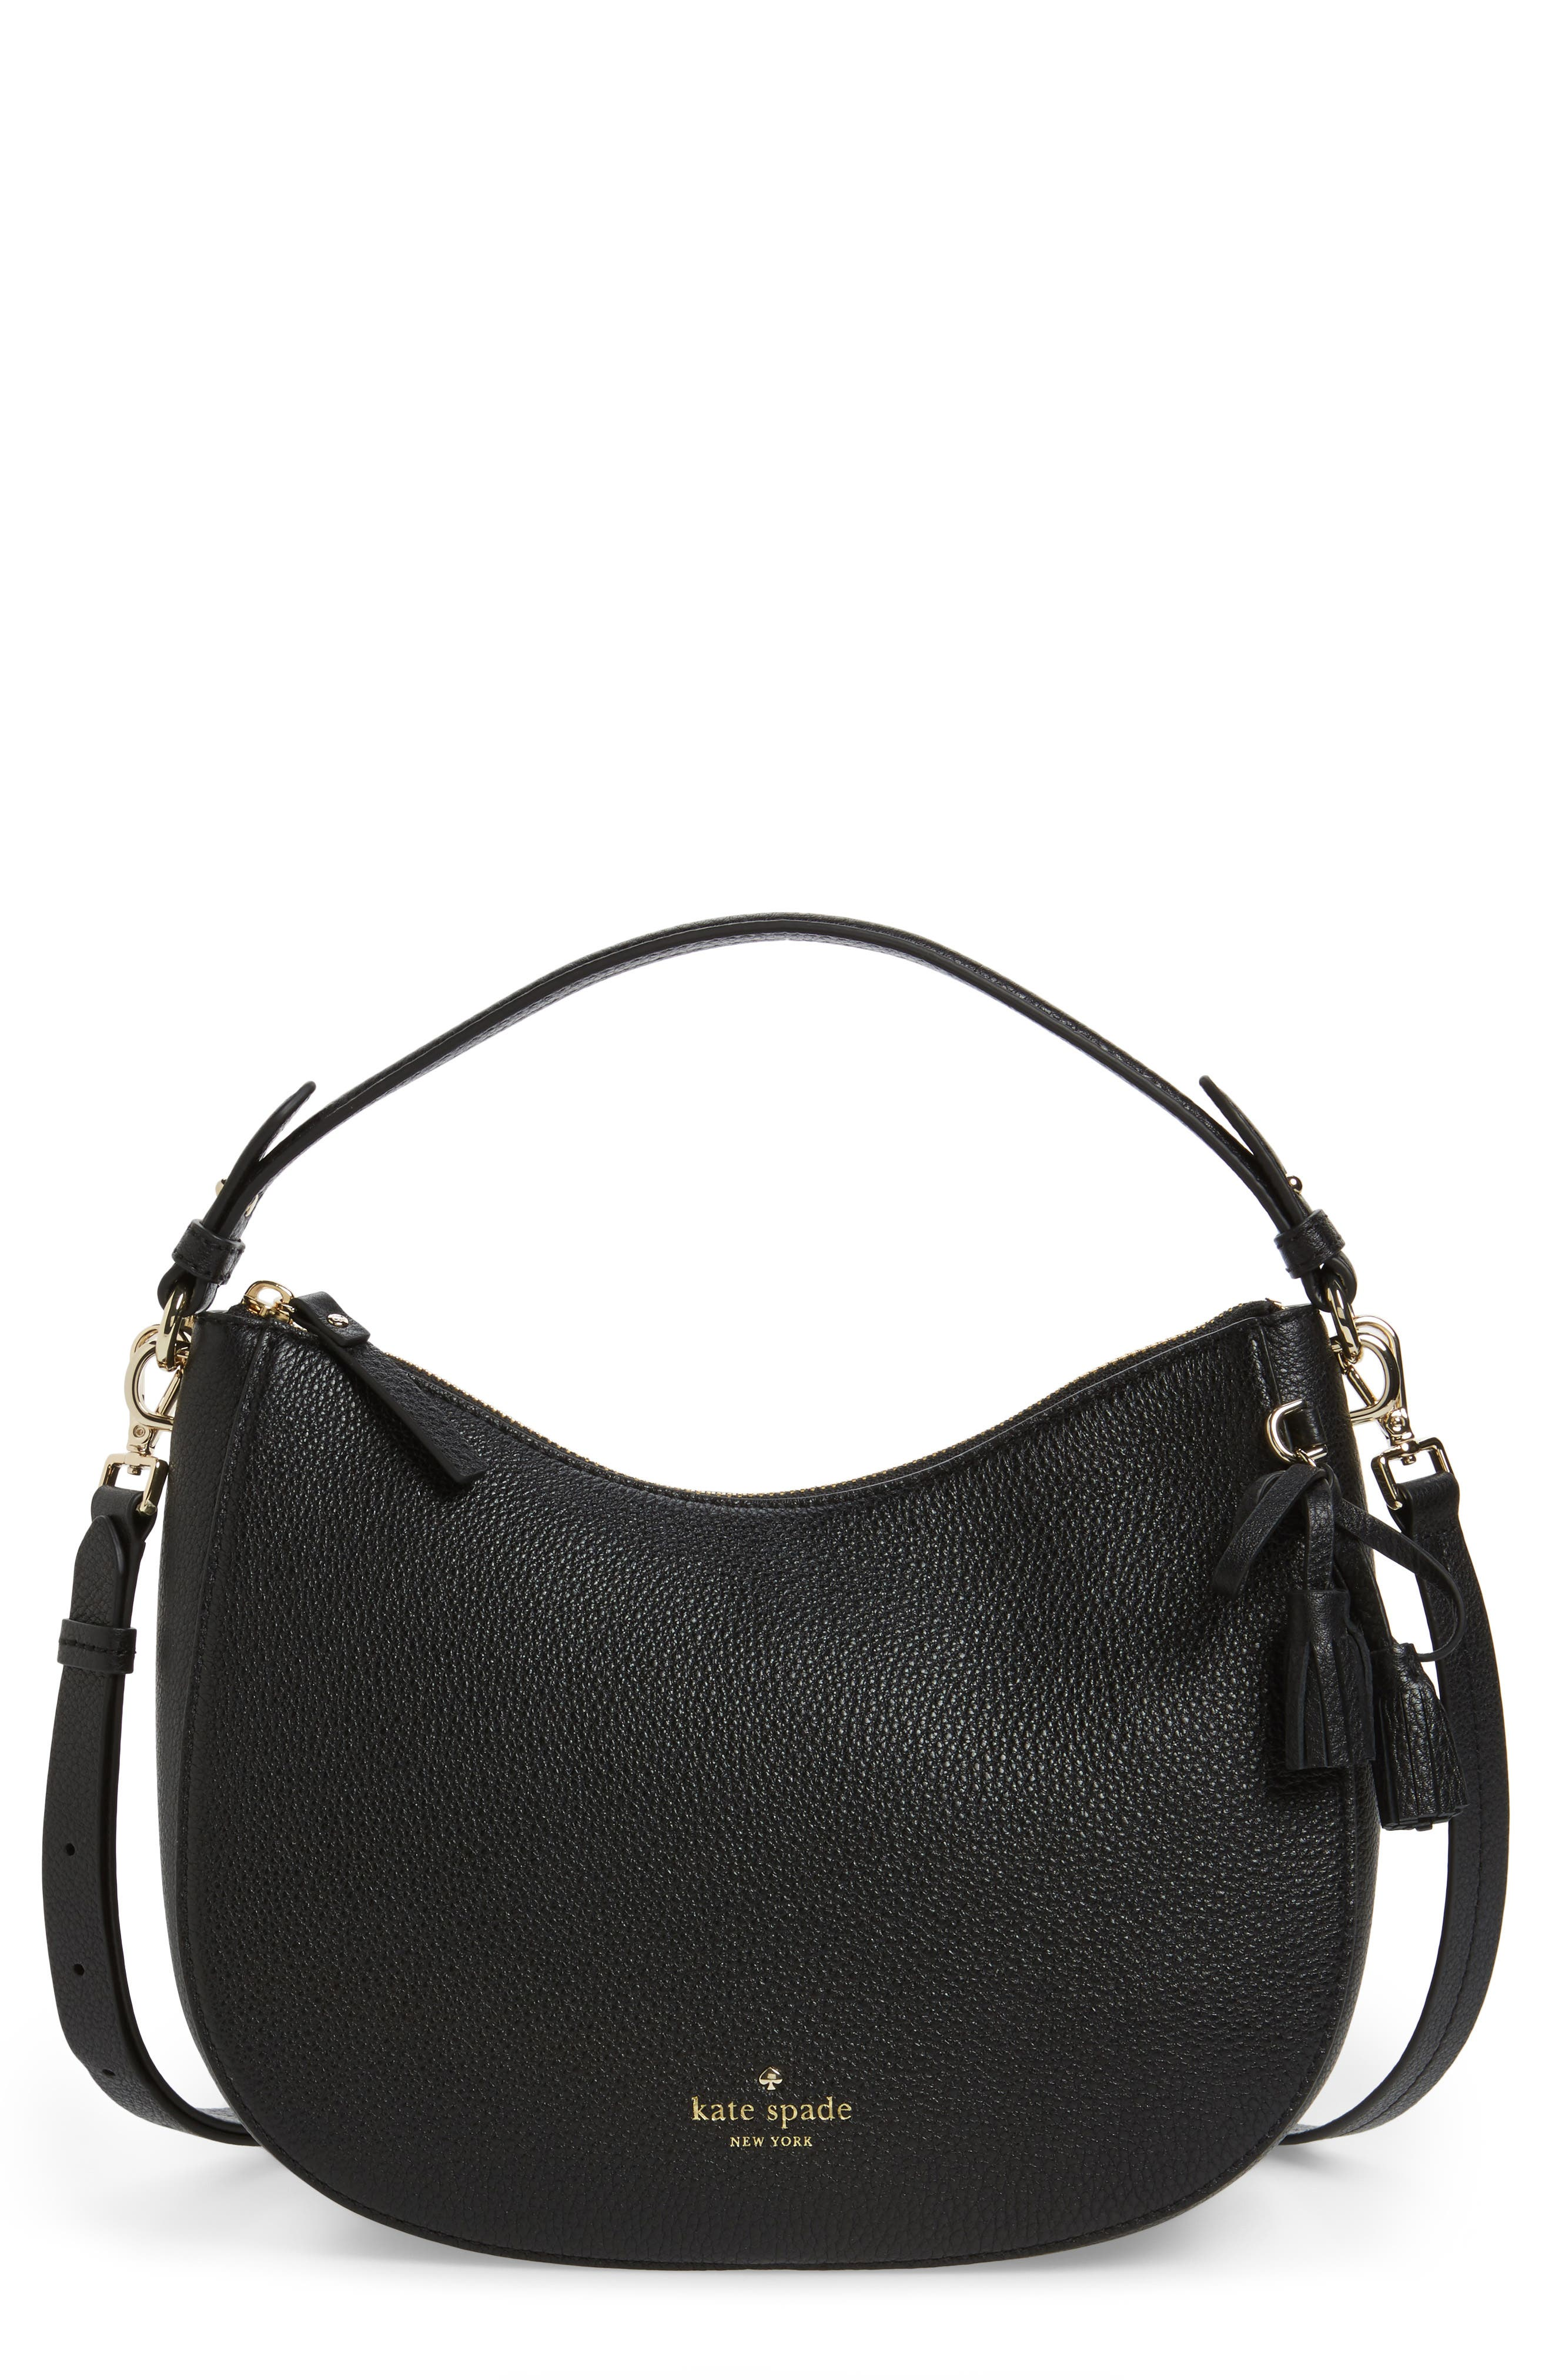 kate spade new york hayes street small aiden leather hobo